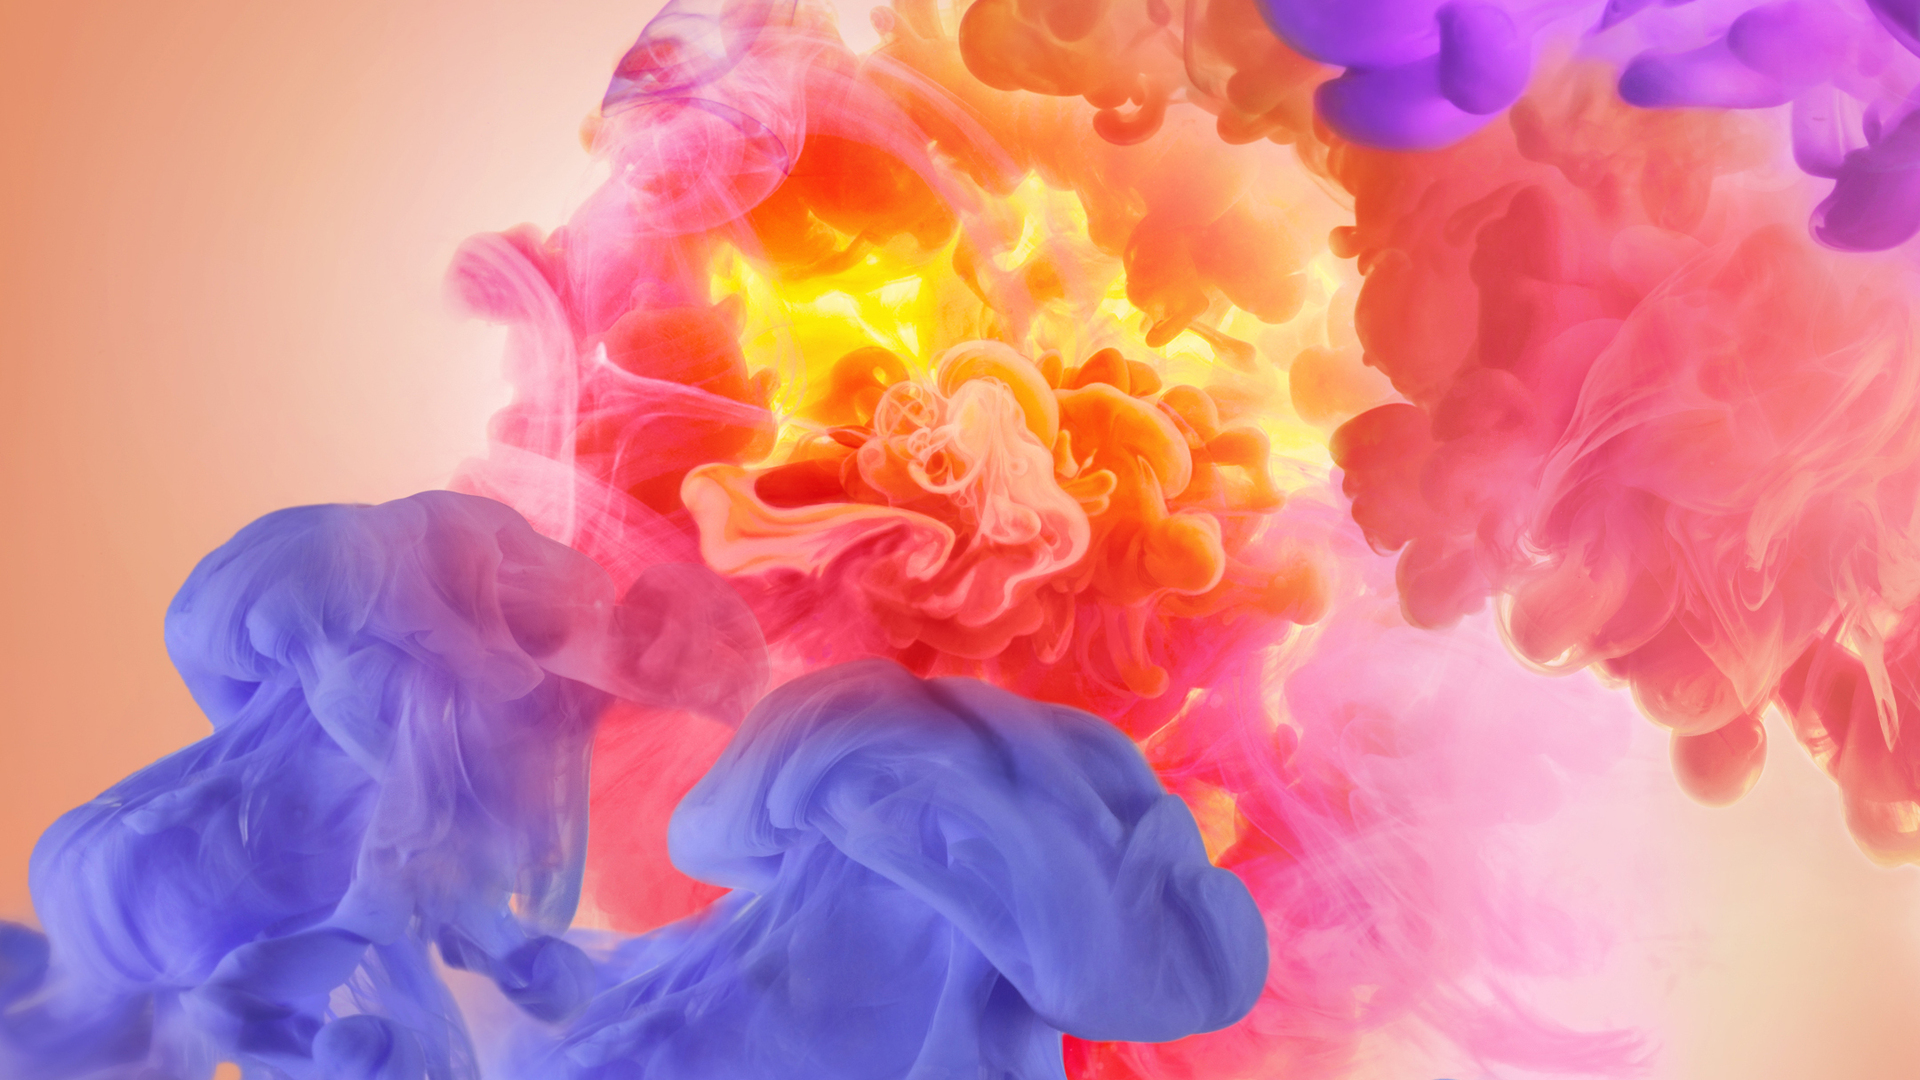 1920x1080 Smoke Colors Abstract Laptop Full Hd 1080p Hd 4k